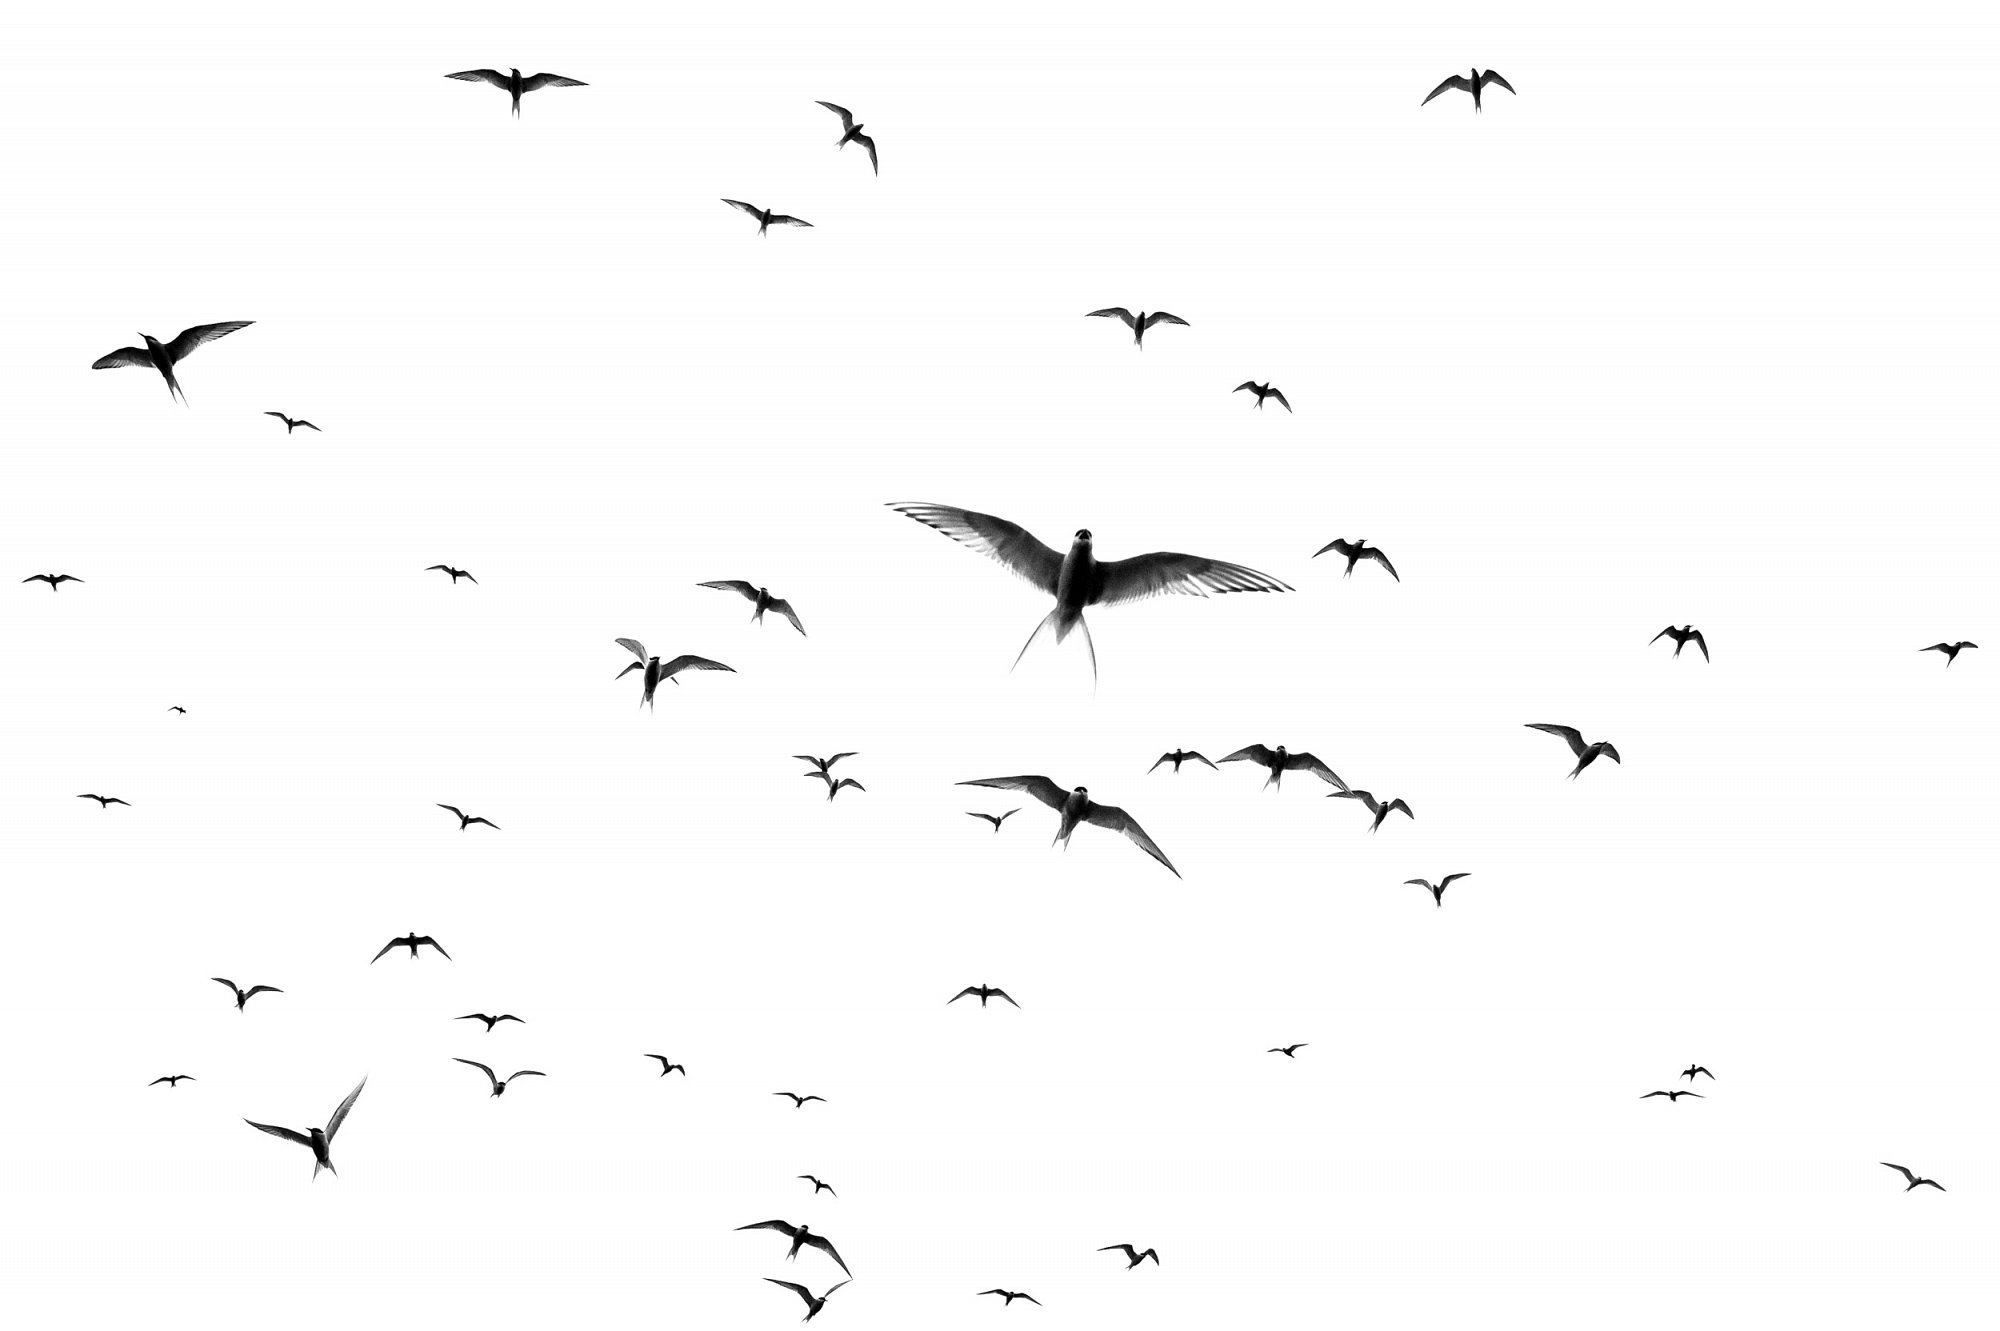 Artic terns flying against the cloudy sky in Iceland. Private project.